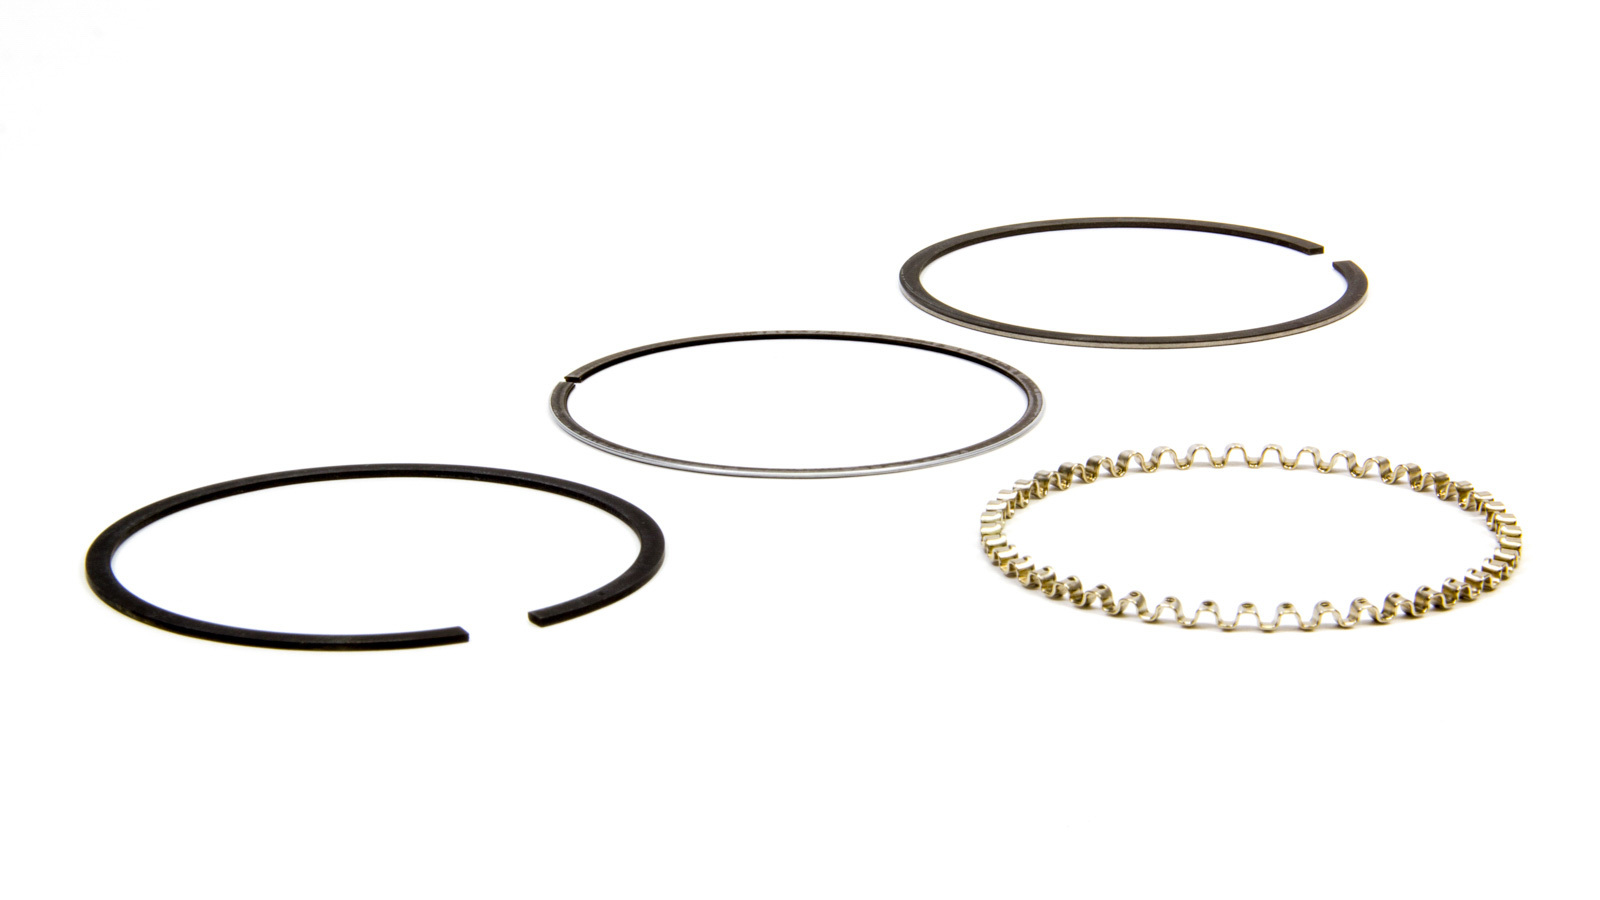 Wiseco 3805HF Piston Rings, 3.805 in Bore, File Fit, 1/16 x 1/16 x 3.0 mm Thick, Standard Tension, Plasma Moly, 1 Cylinder, Kit